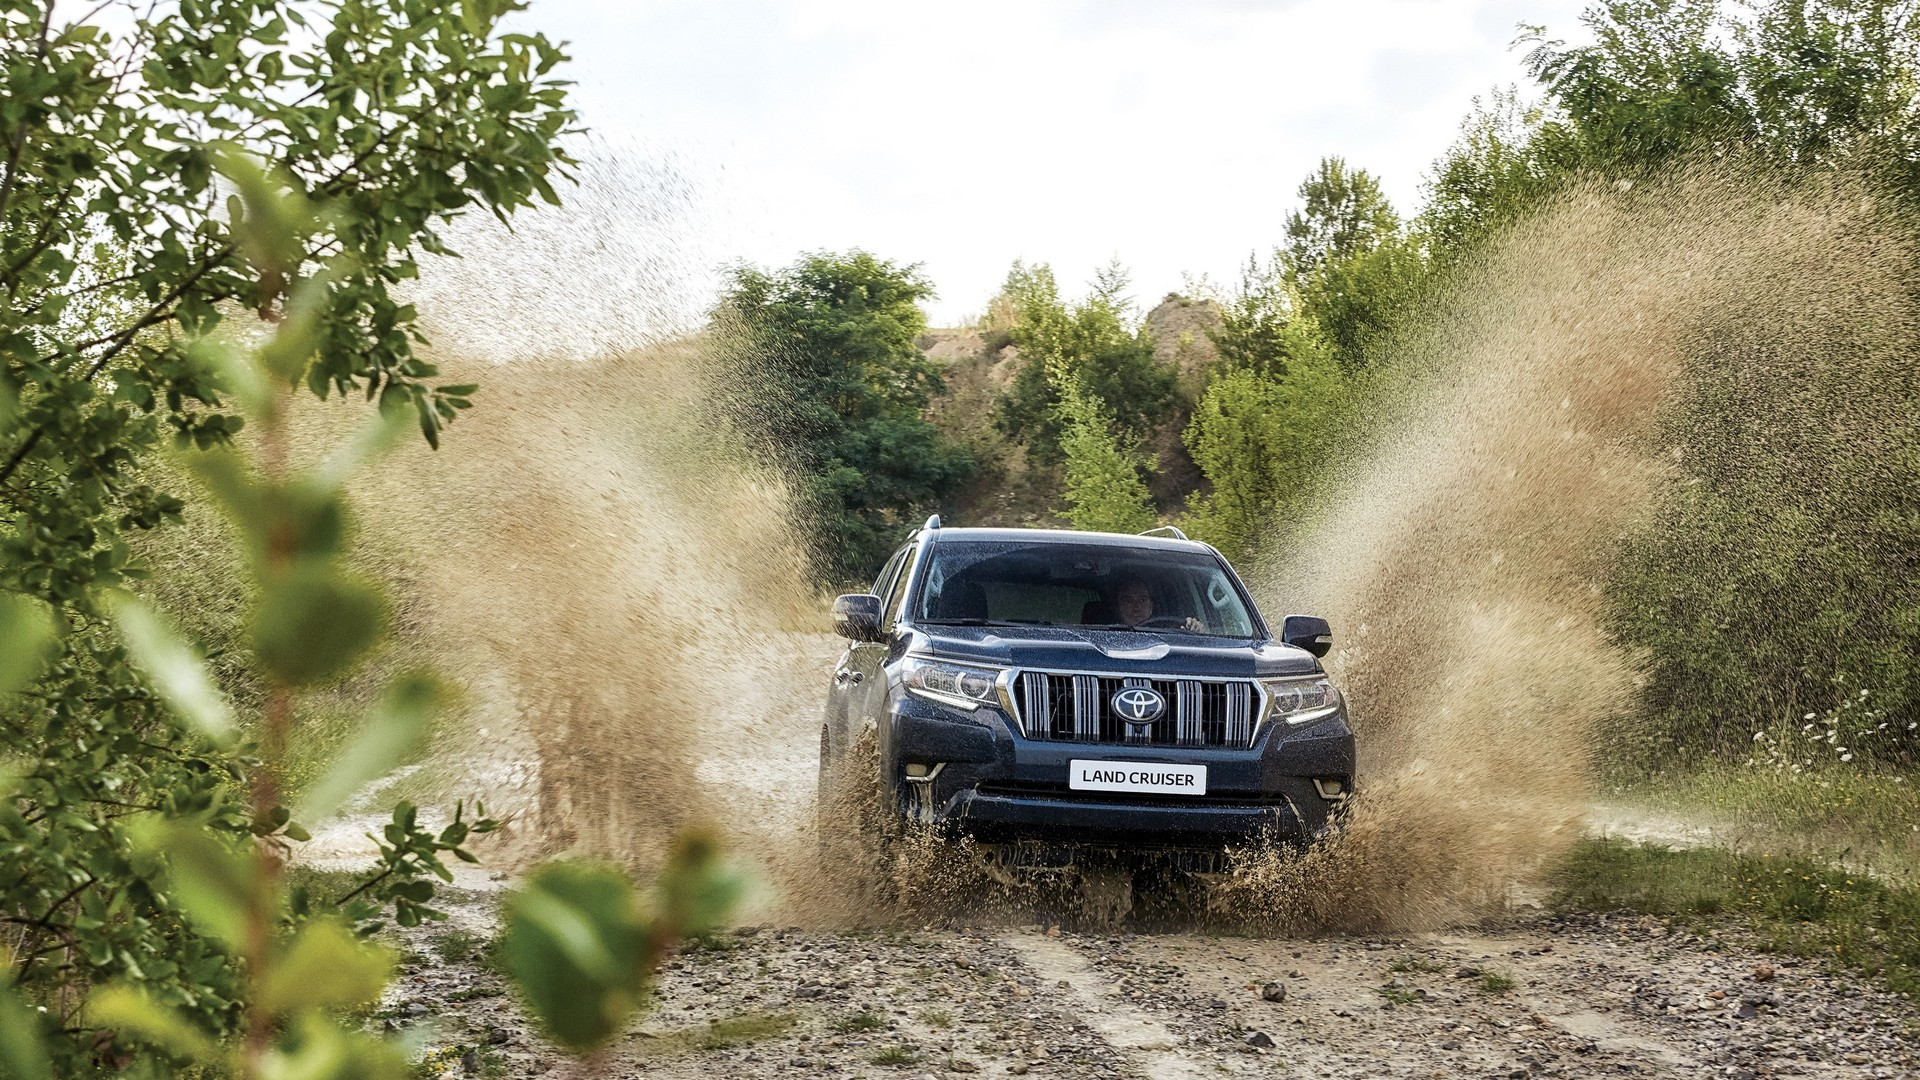 Обновленный Toyota Land Cruiser Prado представили во Франкфурте